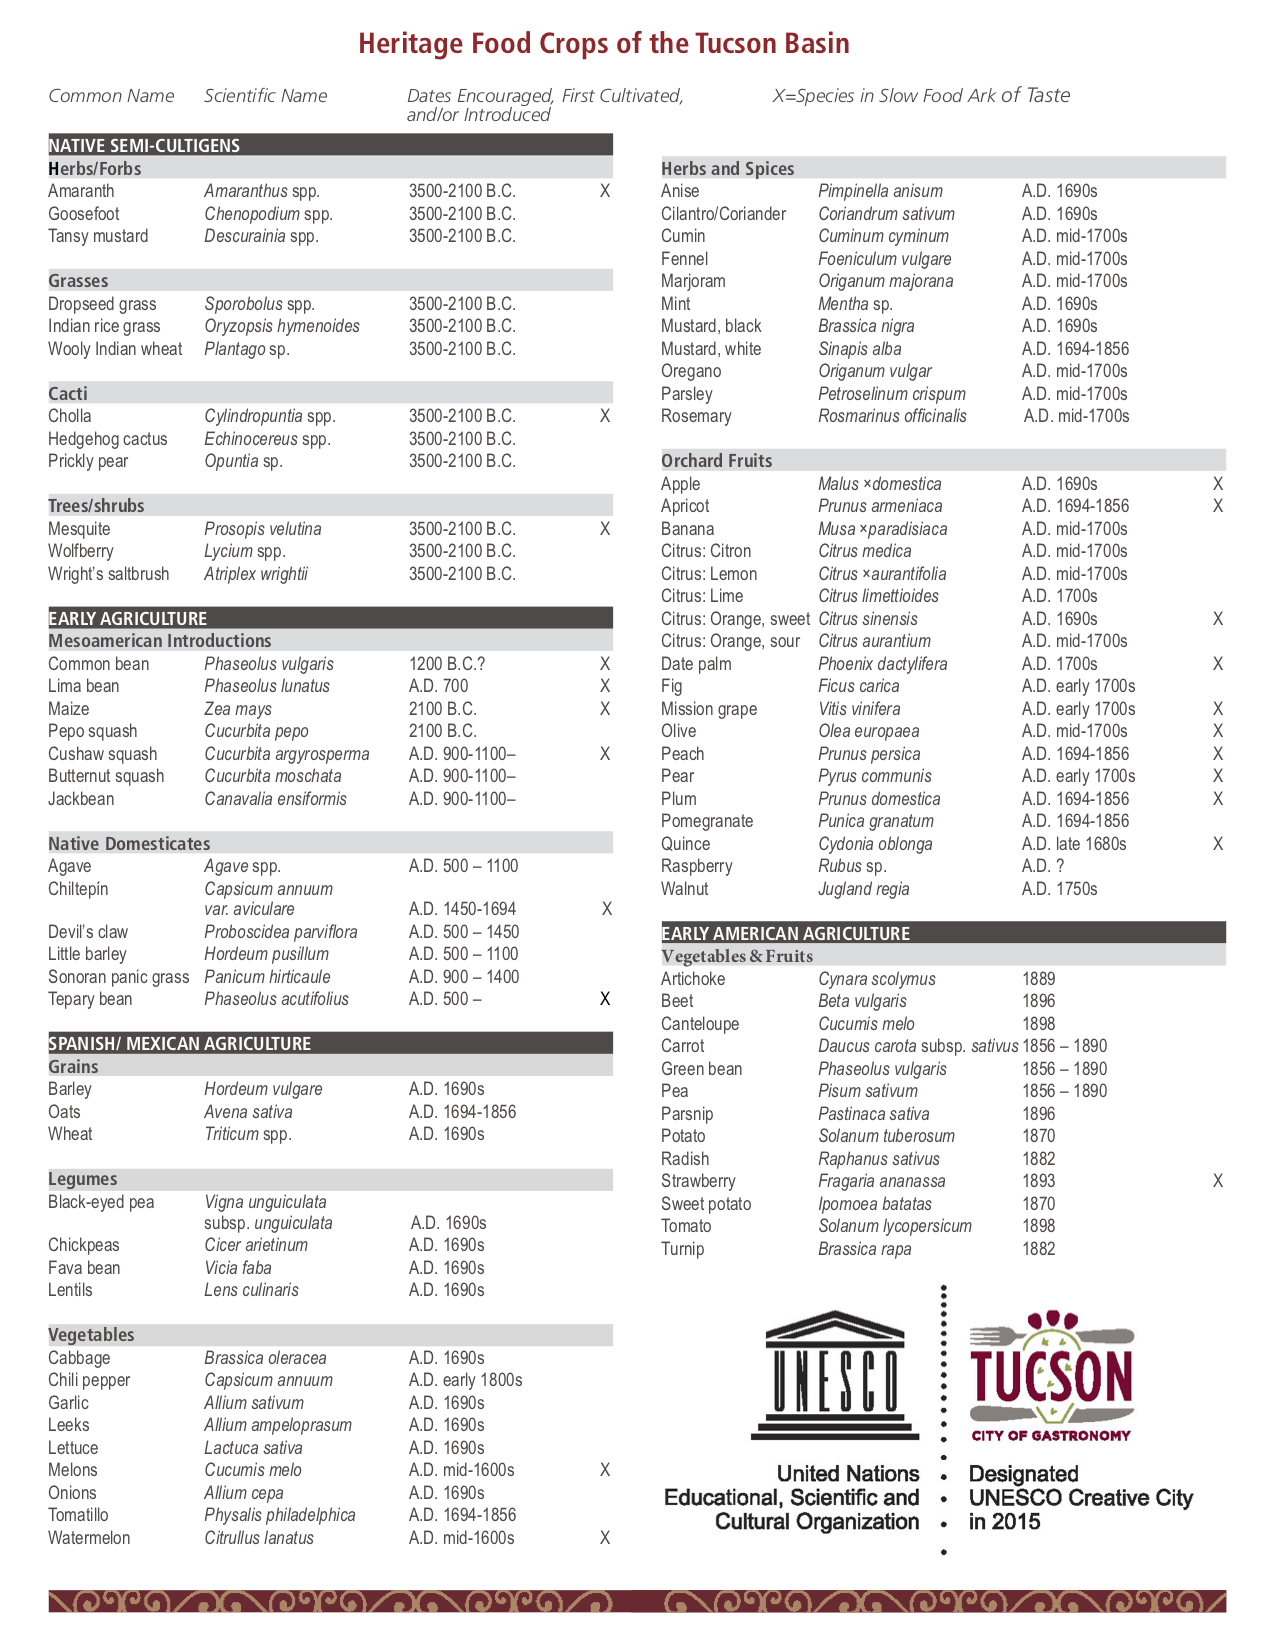 Heritage Food Crops of the Tucson Basin.png